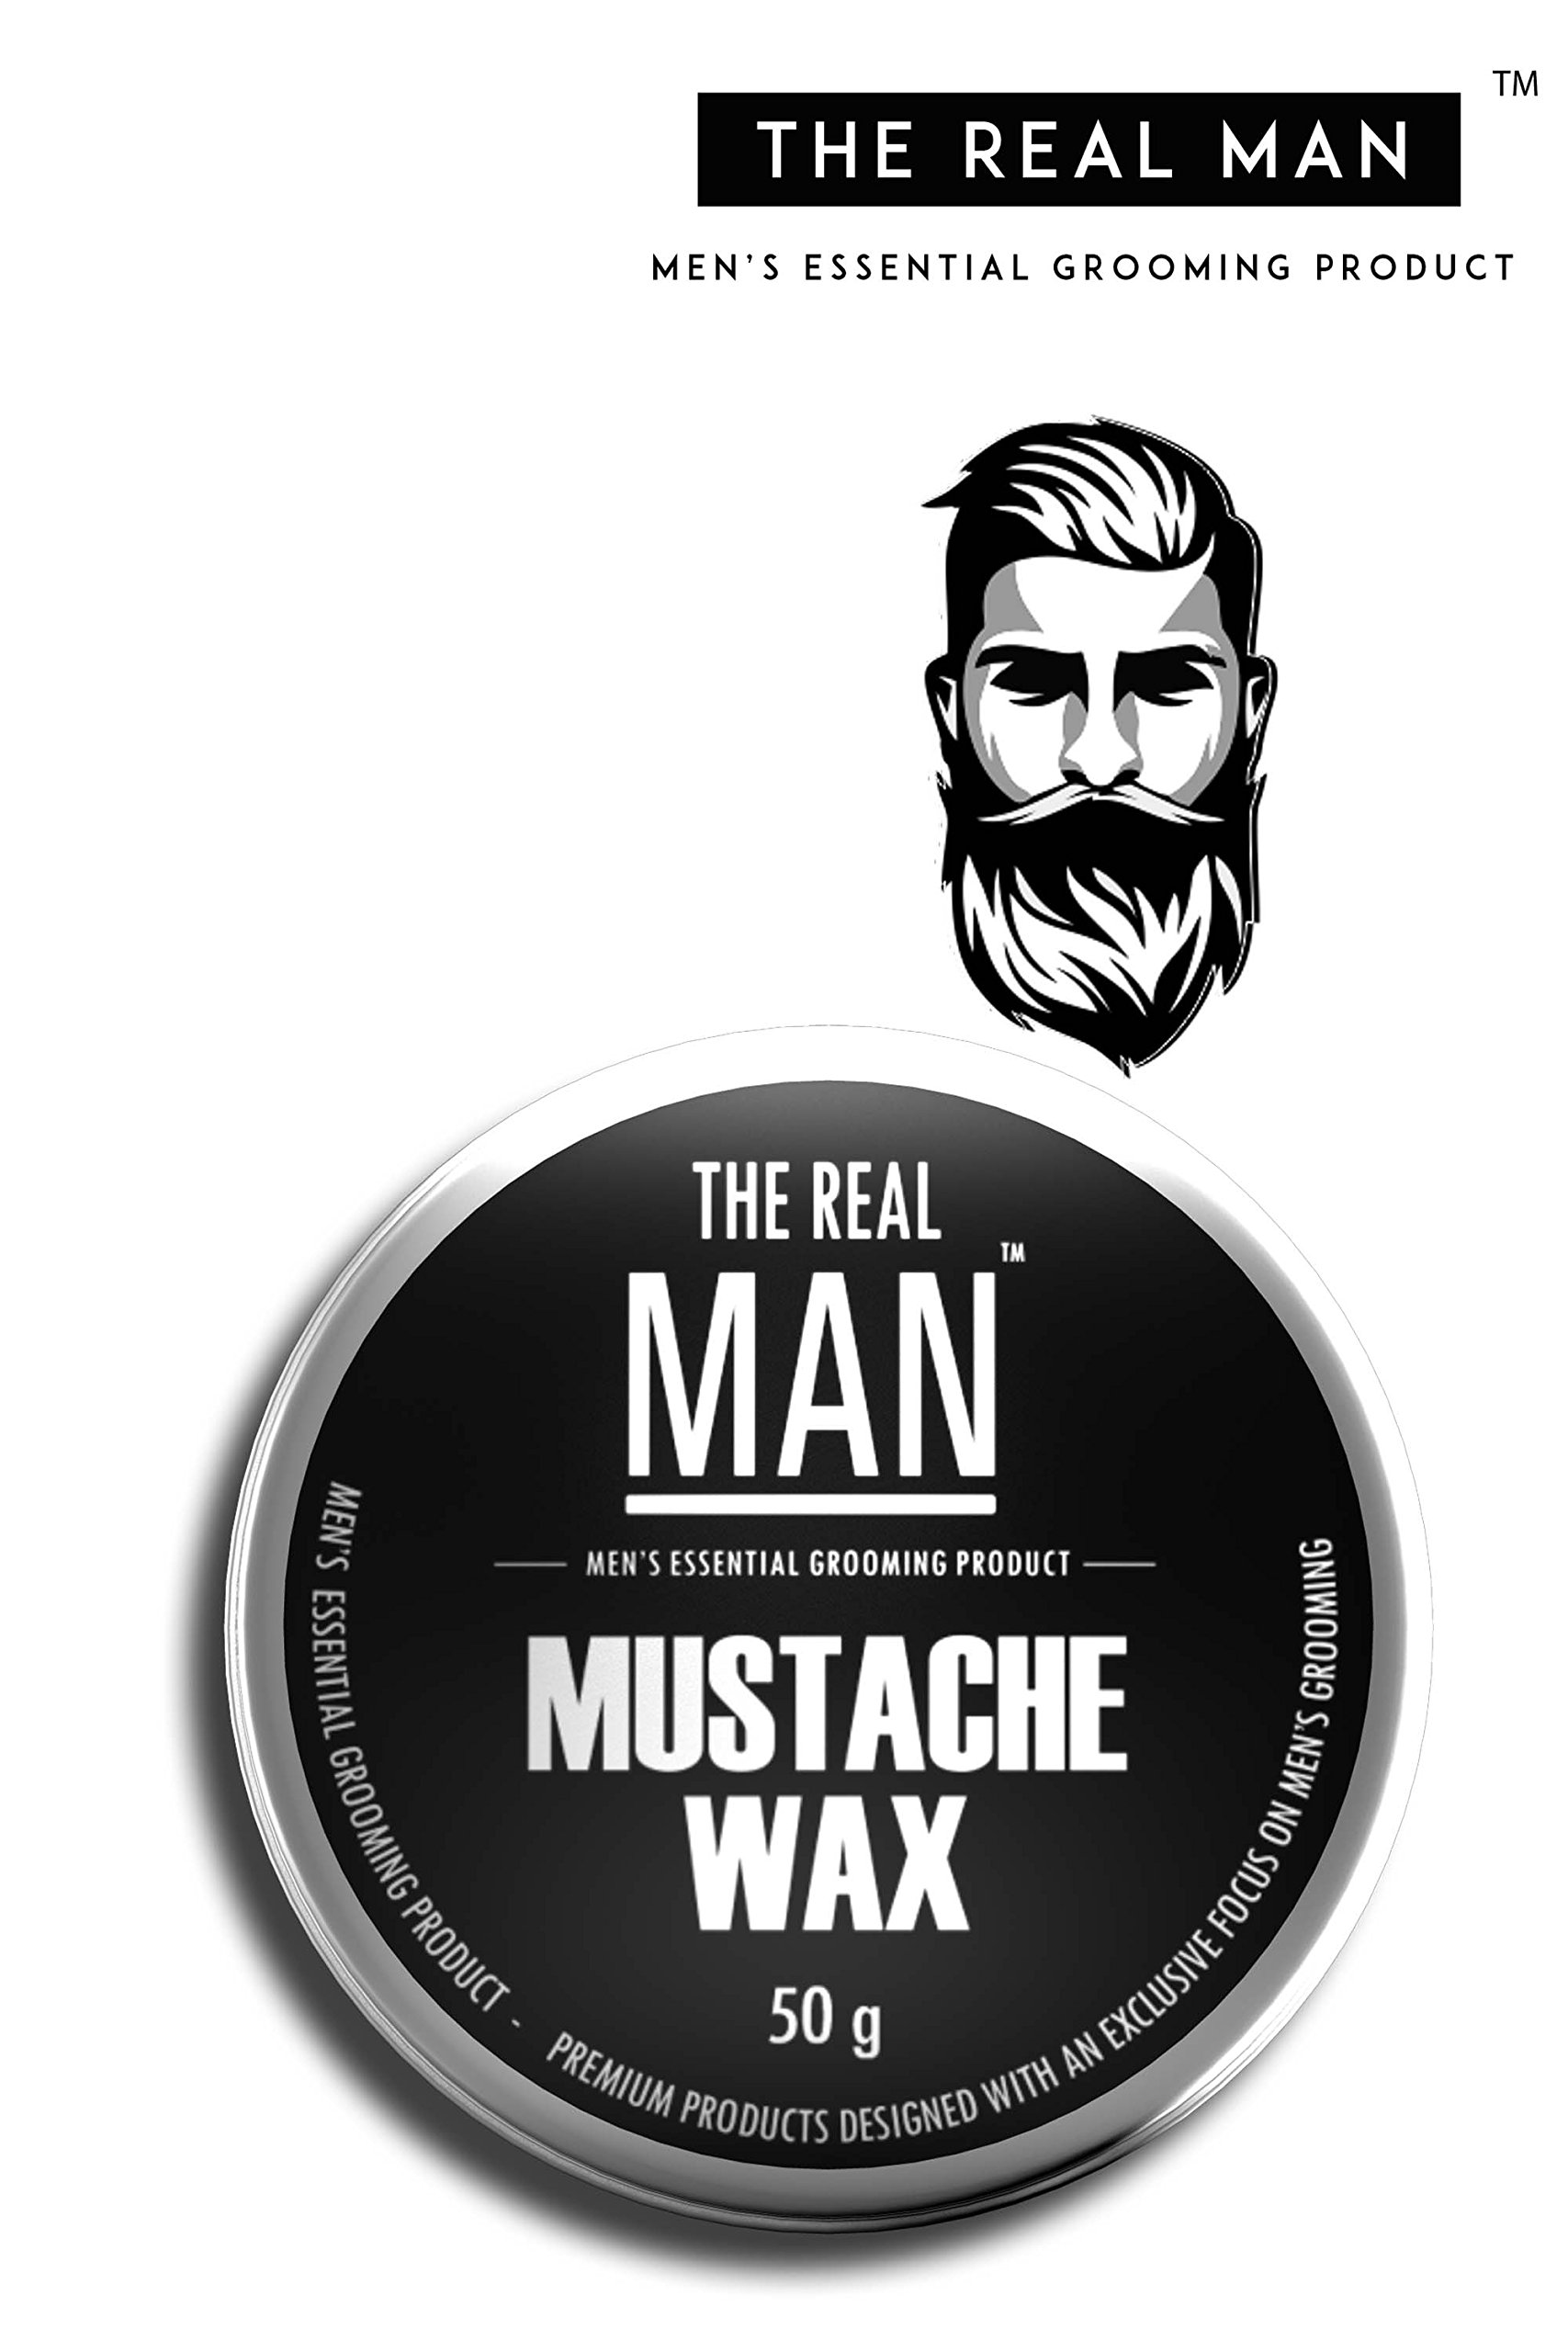 Mustache Wax with All Natural- Almond Oil | Jojoba Oil | Olive Oil | Sunflower Oil | Fragrances with Bees Wax |Shea Butter | Coco Butter 100% Organic : Extra Strength, Firm Hold 50g by THE REAL MAN.